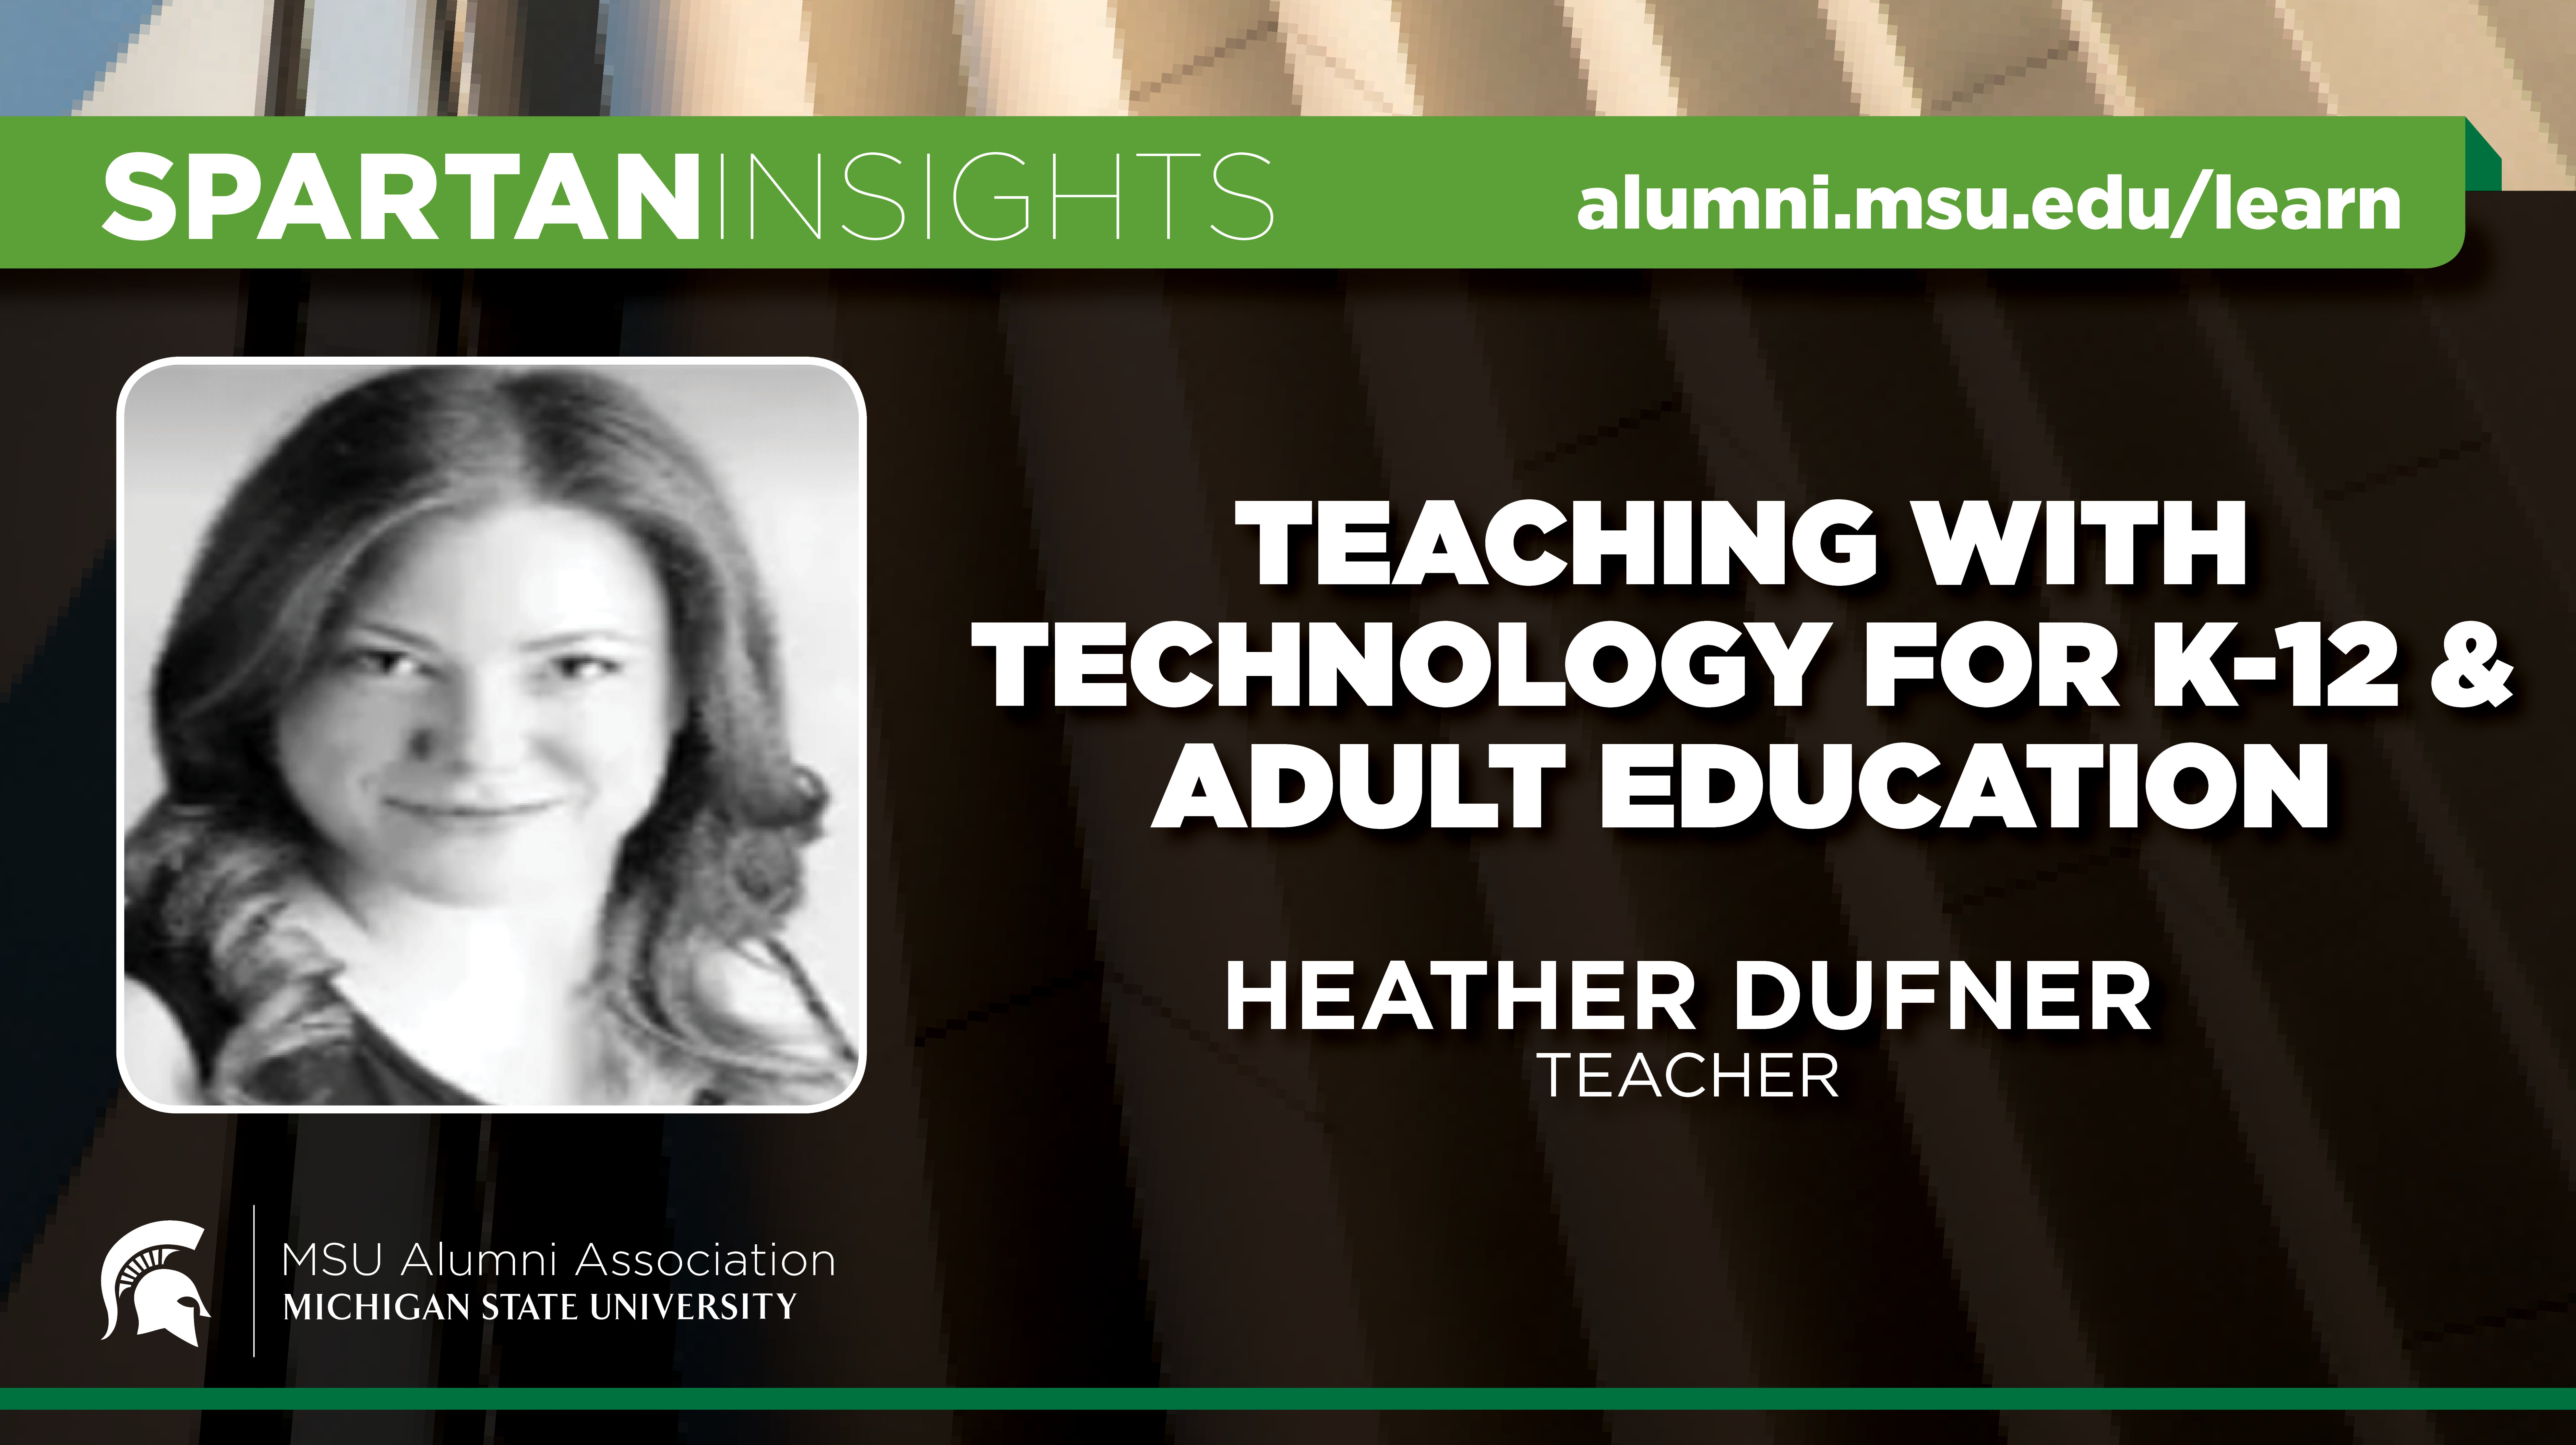 webinar cover image for Heather Dufner | Teaching With Technology For K-12 & Adult Education